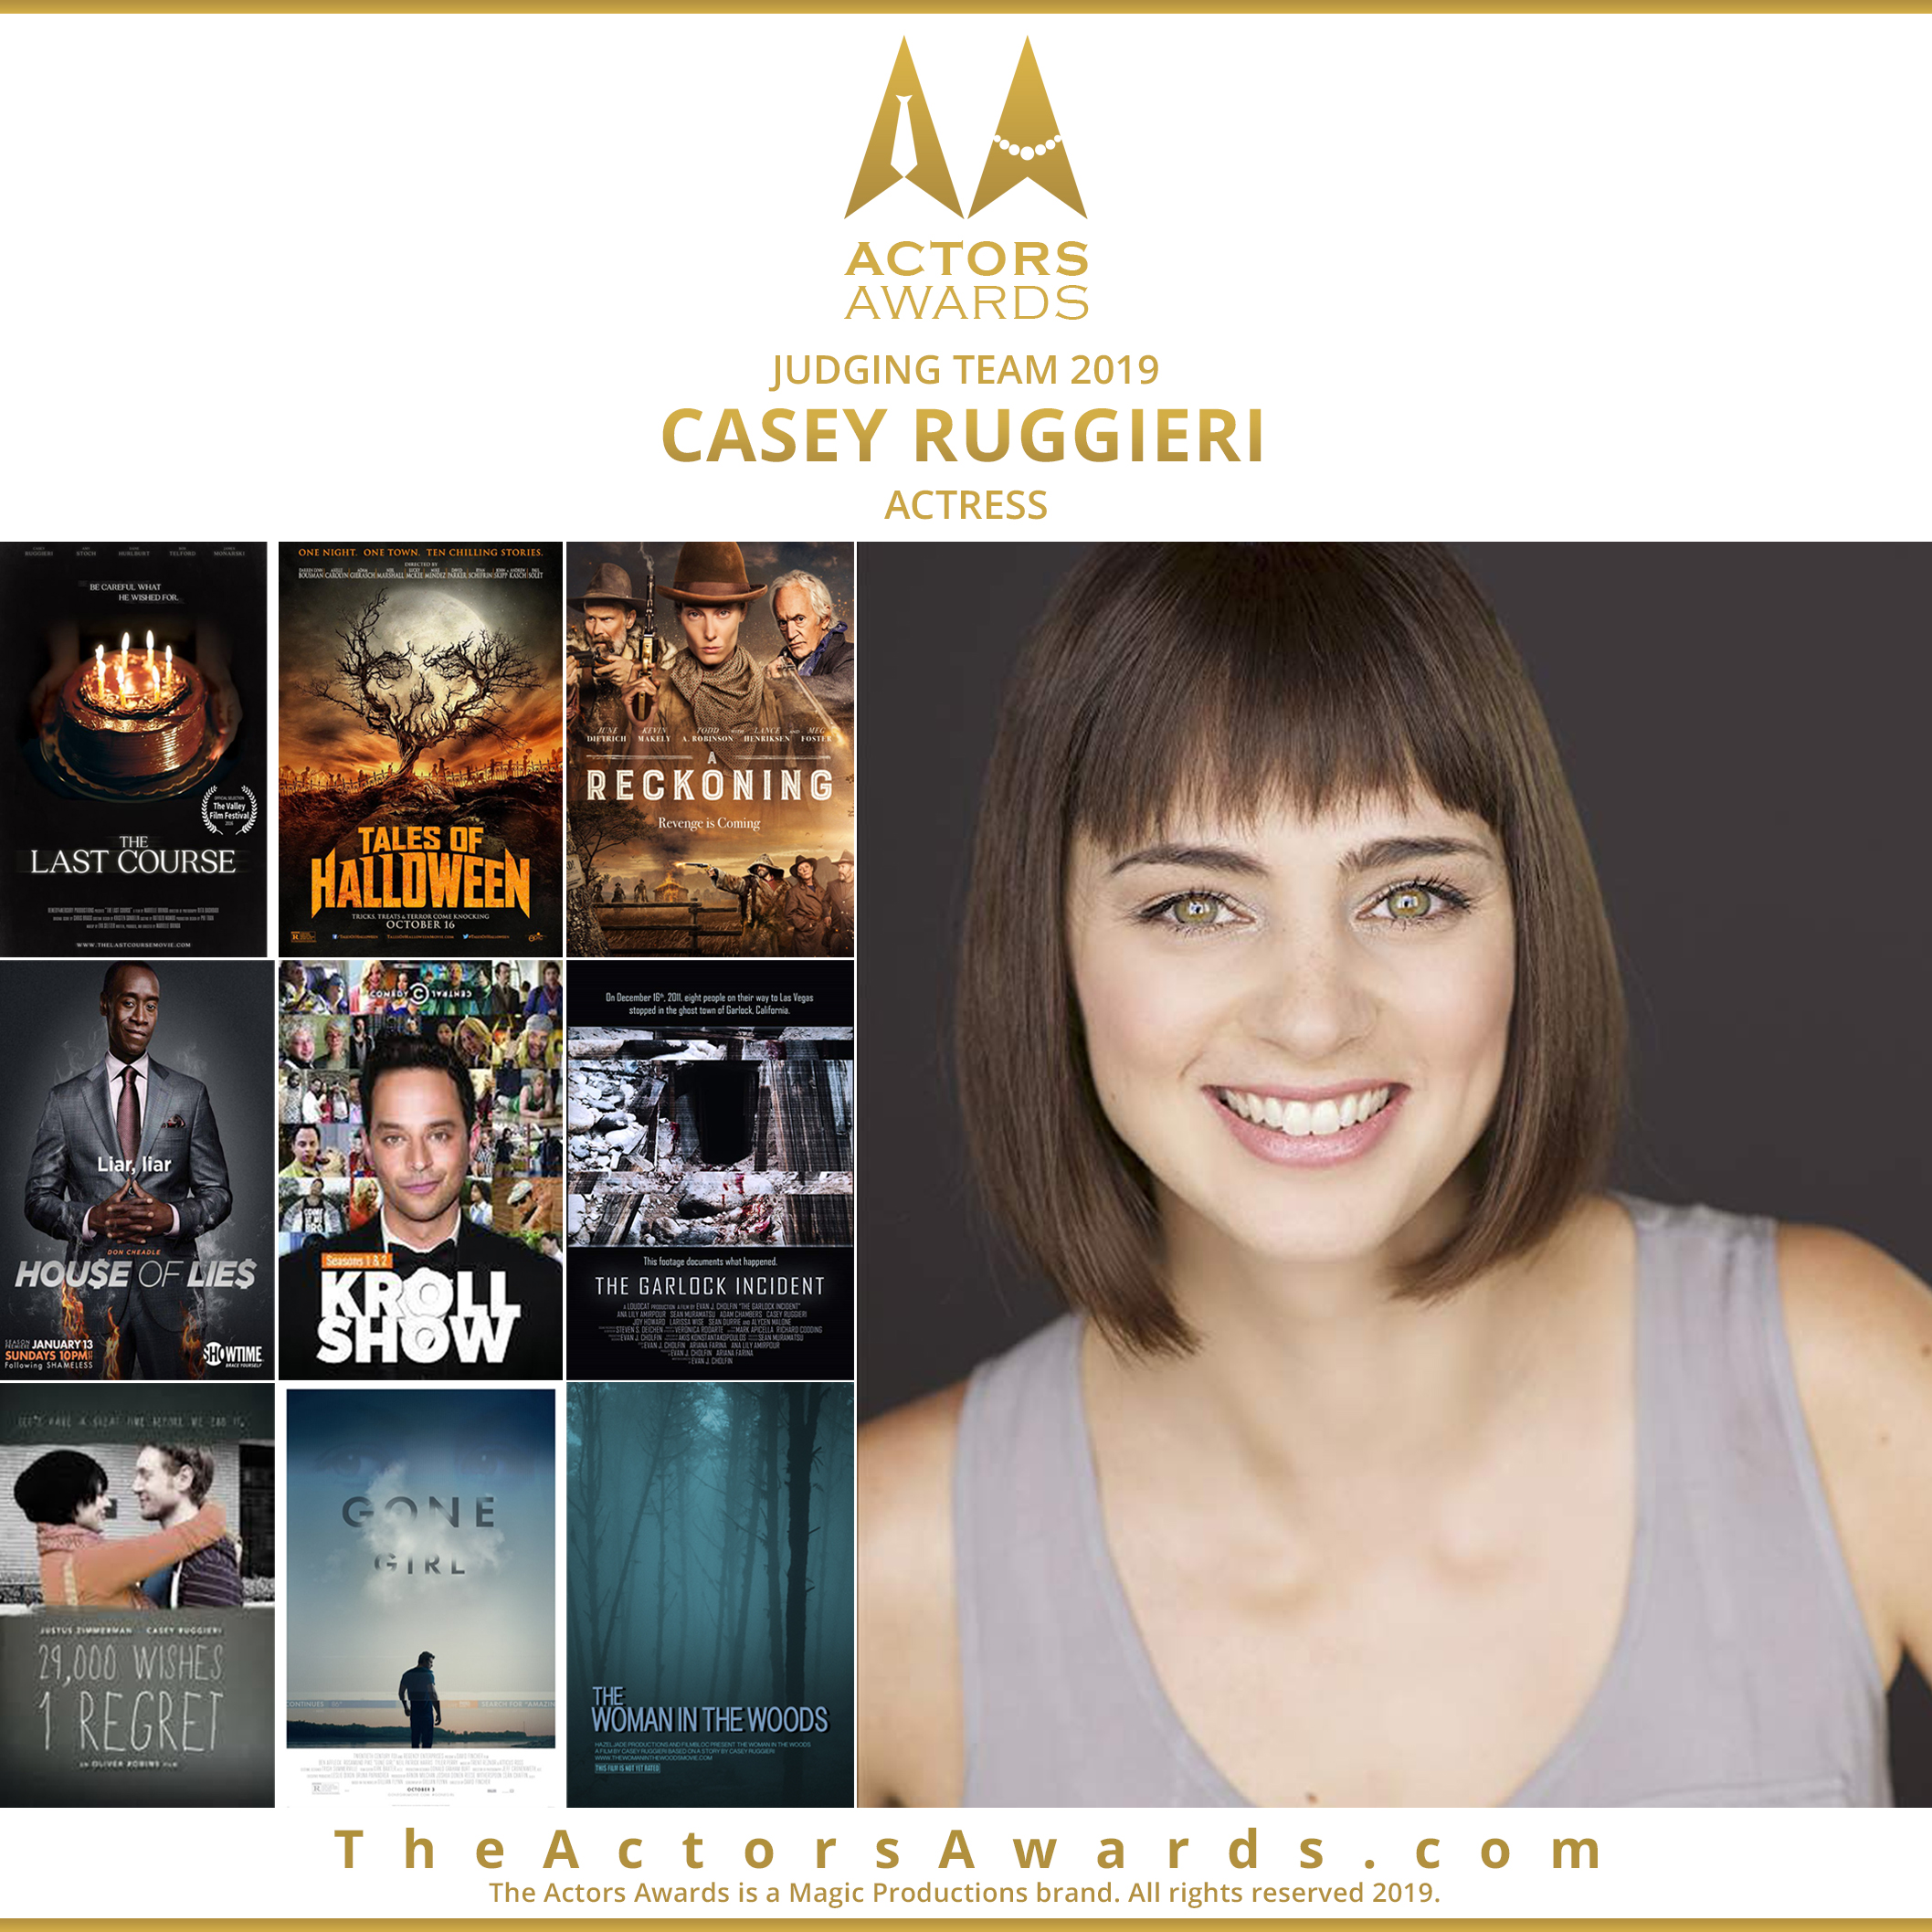 Actors Awards 2019 - Casey Ruggieri